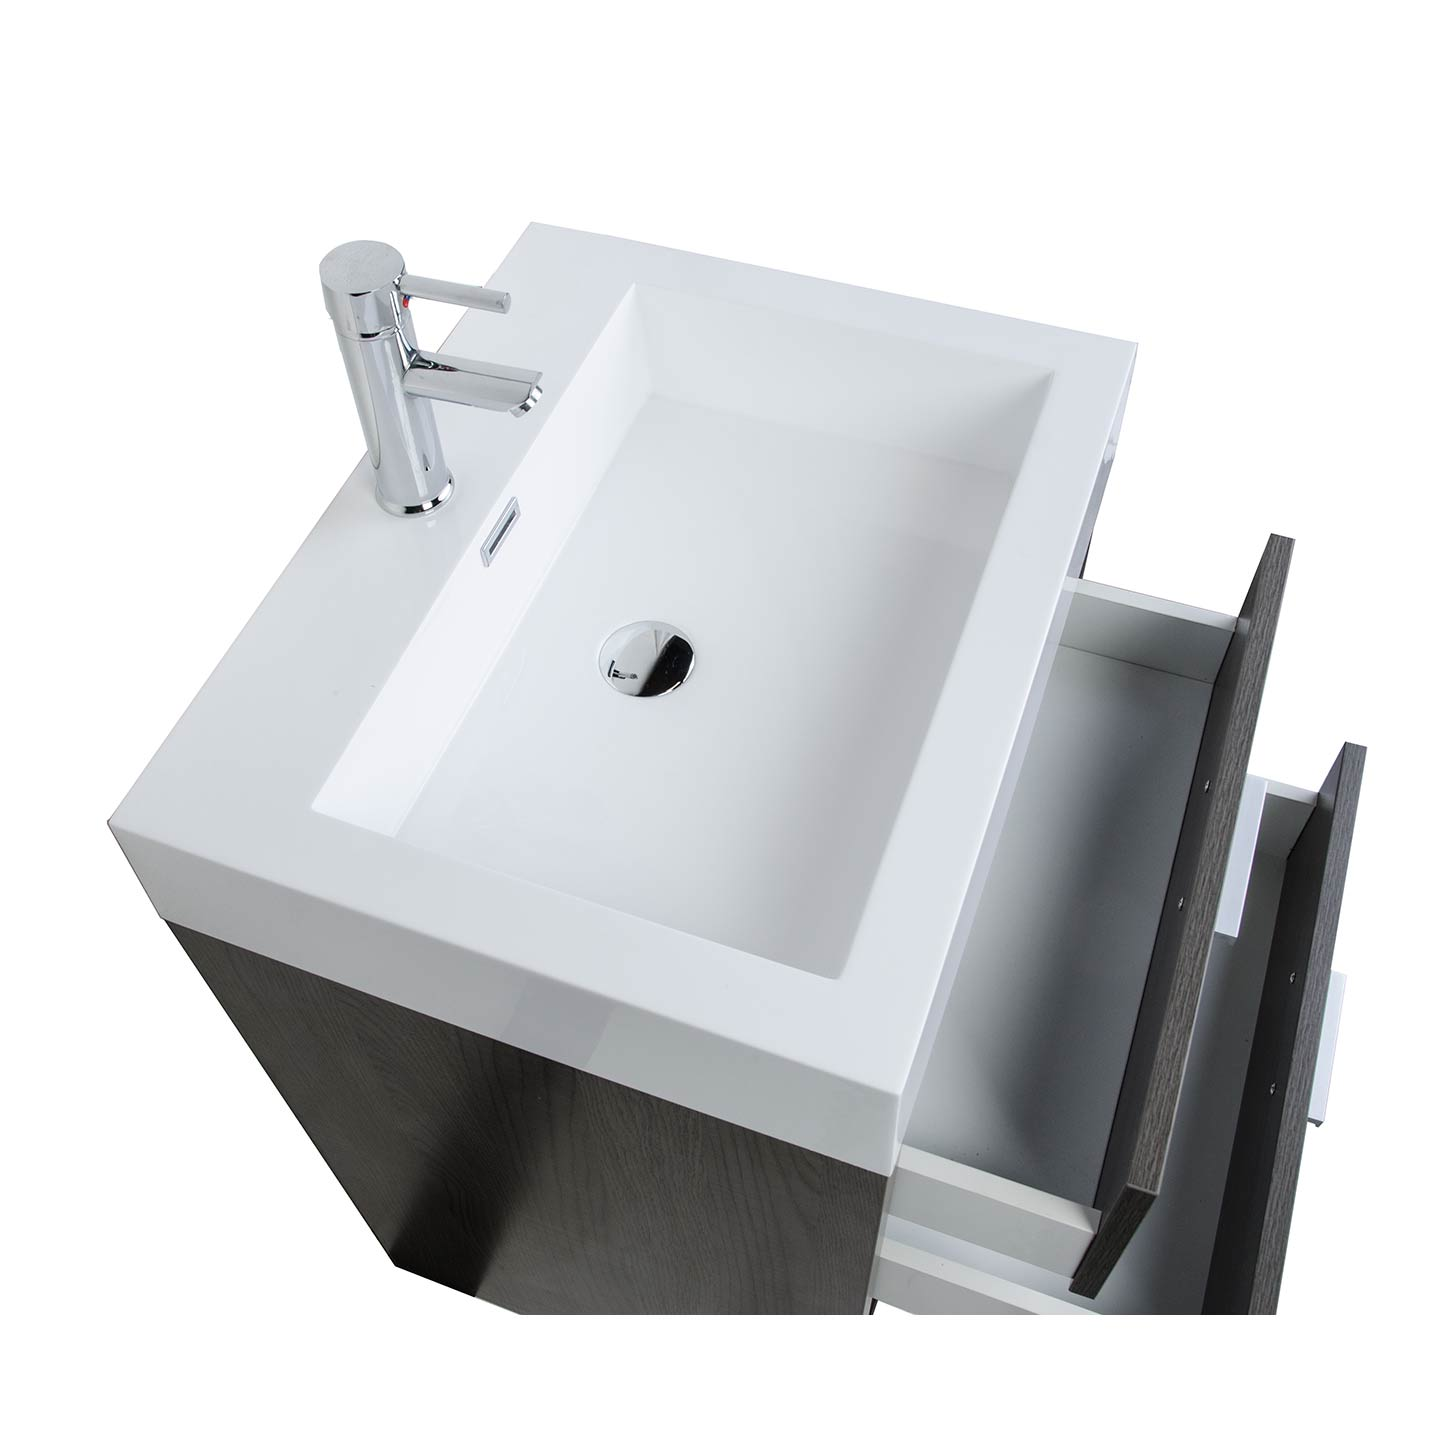 wash bathroom mirror vessel montara sink optional vanities teak cabinet grey gray vanity